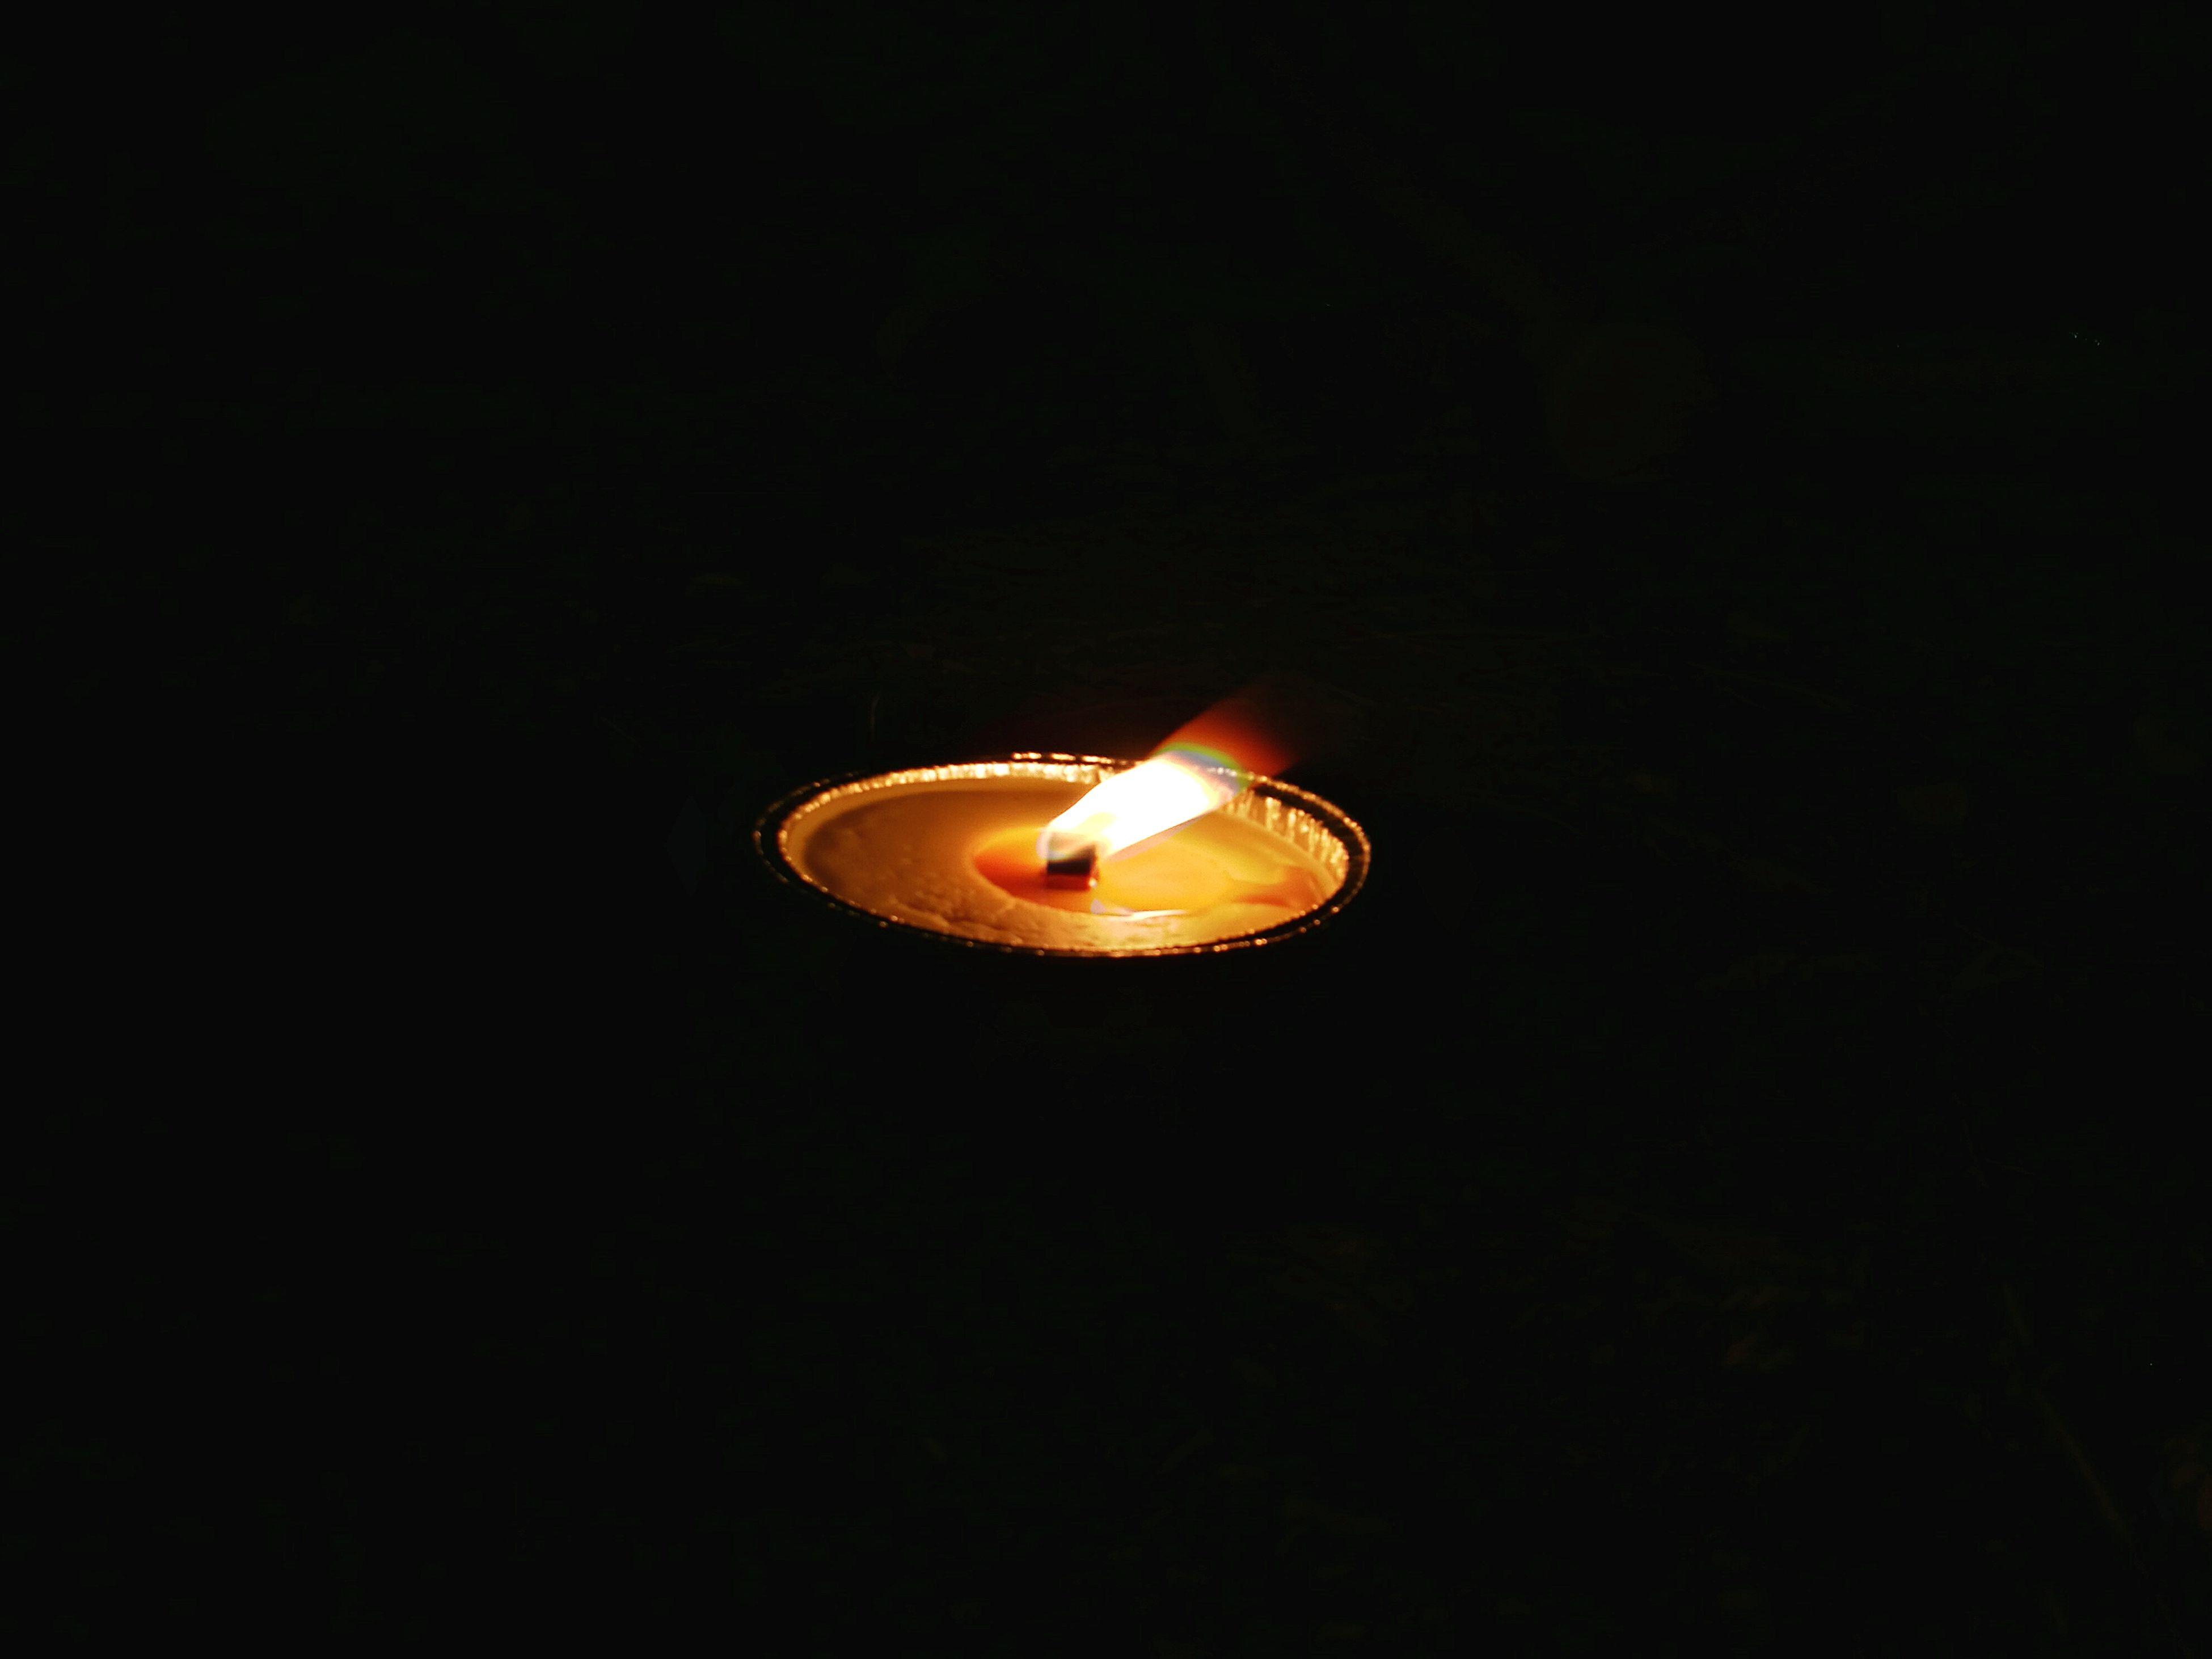 illuminated, burning, copy space, flame, lighting equipment, fire - natural phenomenon, lit, heat - temperature, close-up, candle, glowing, culture, darkroom, outdoors, no people, candlelight, flying